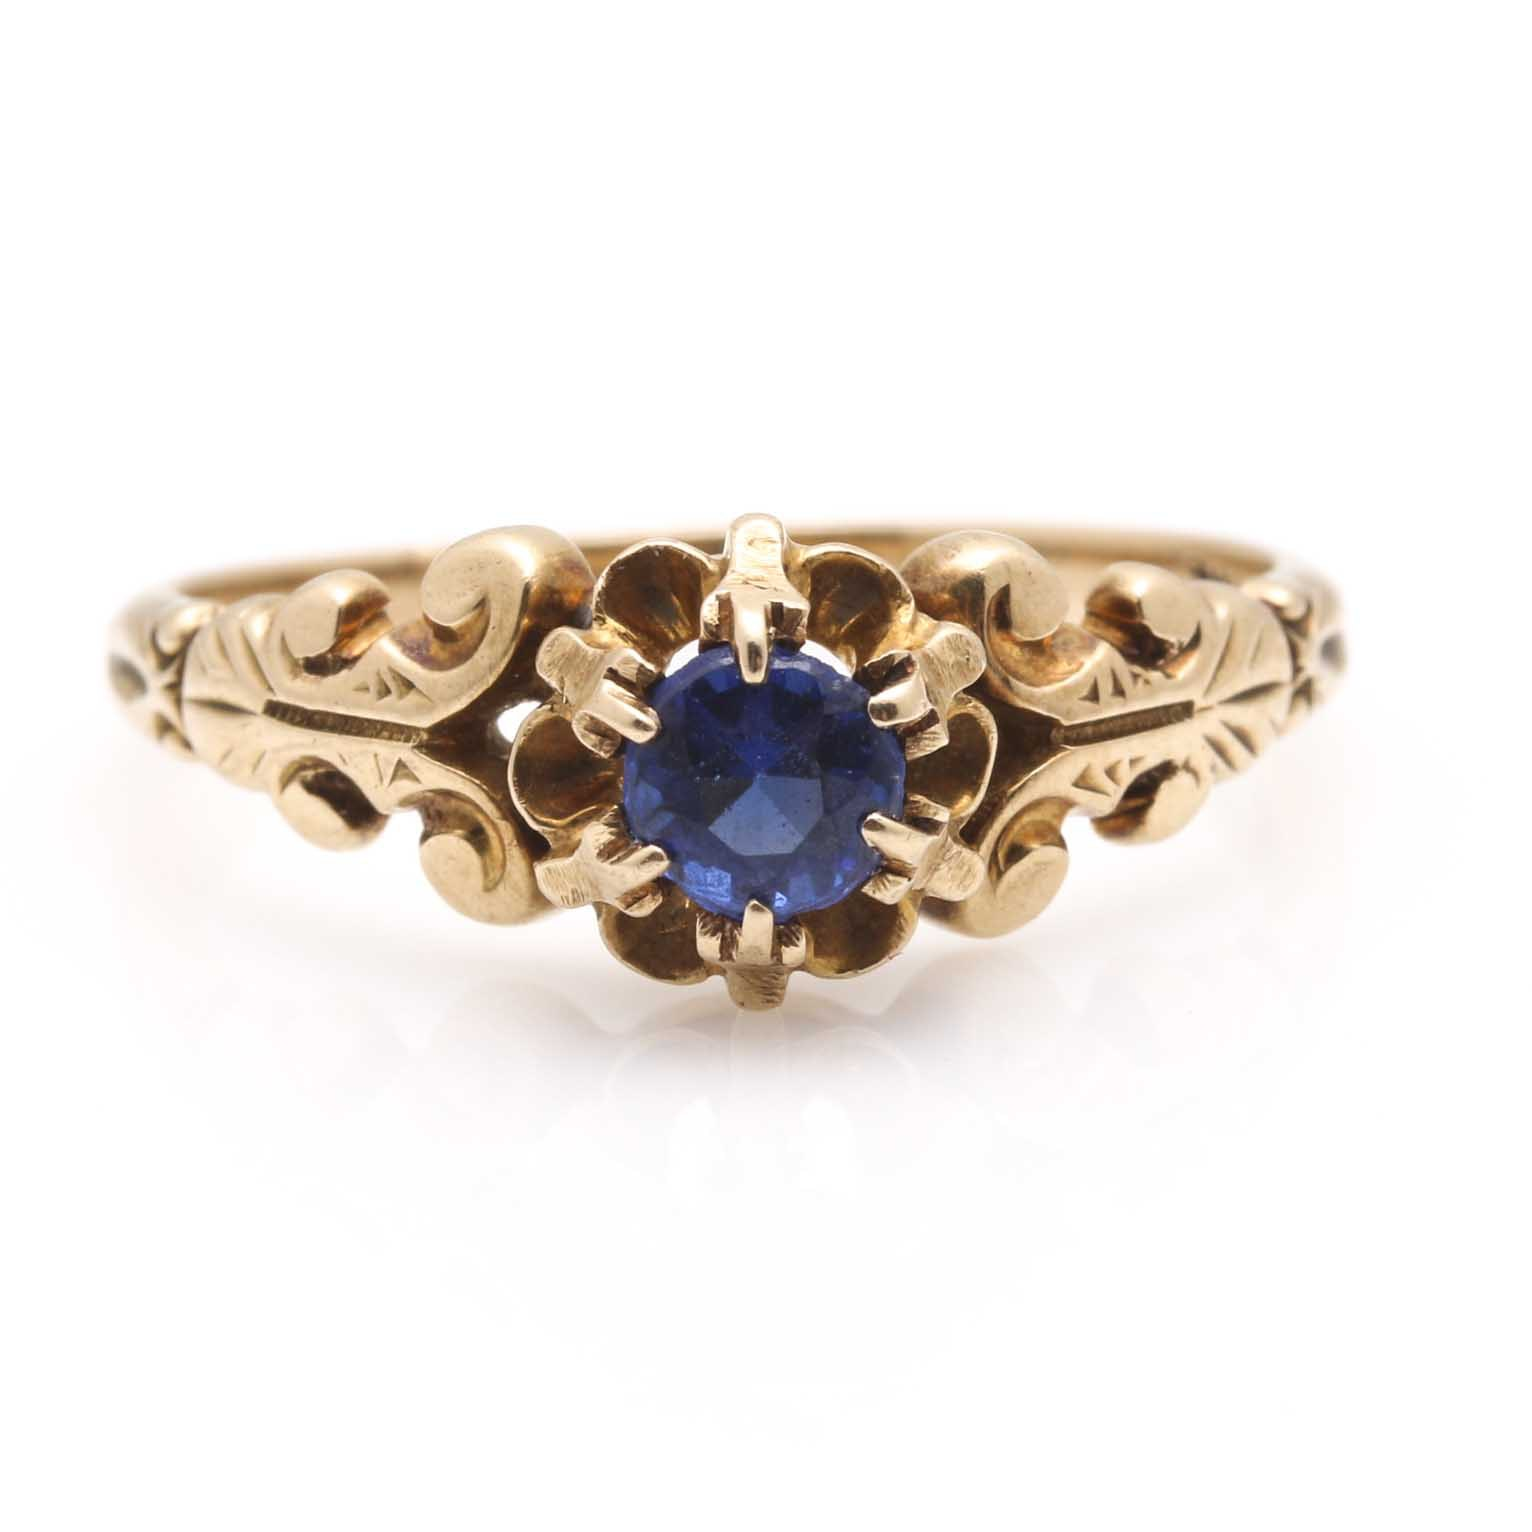 14K Yellow Gold Spinel, Garnet and Glass Triplet Ring